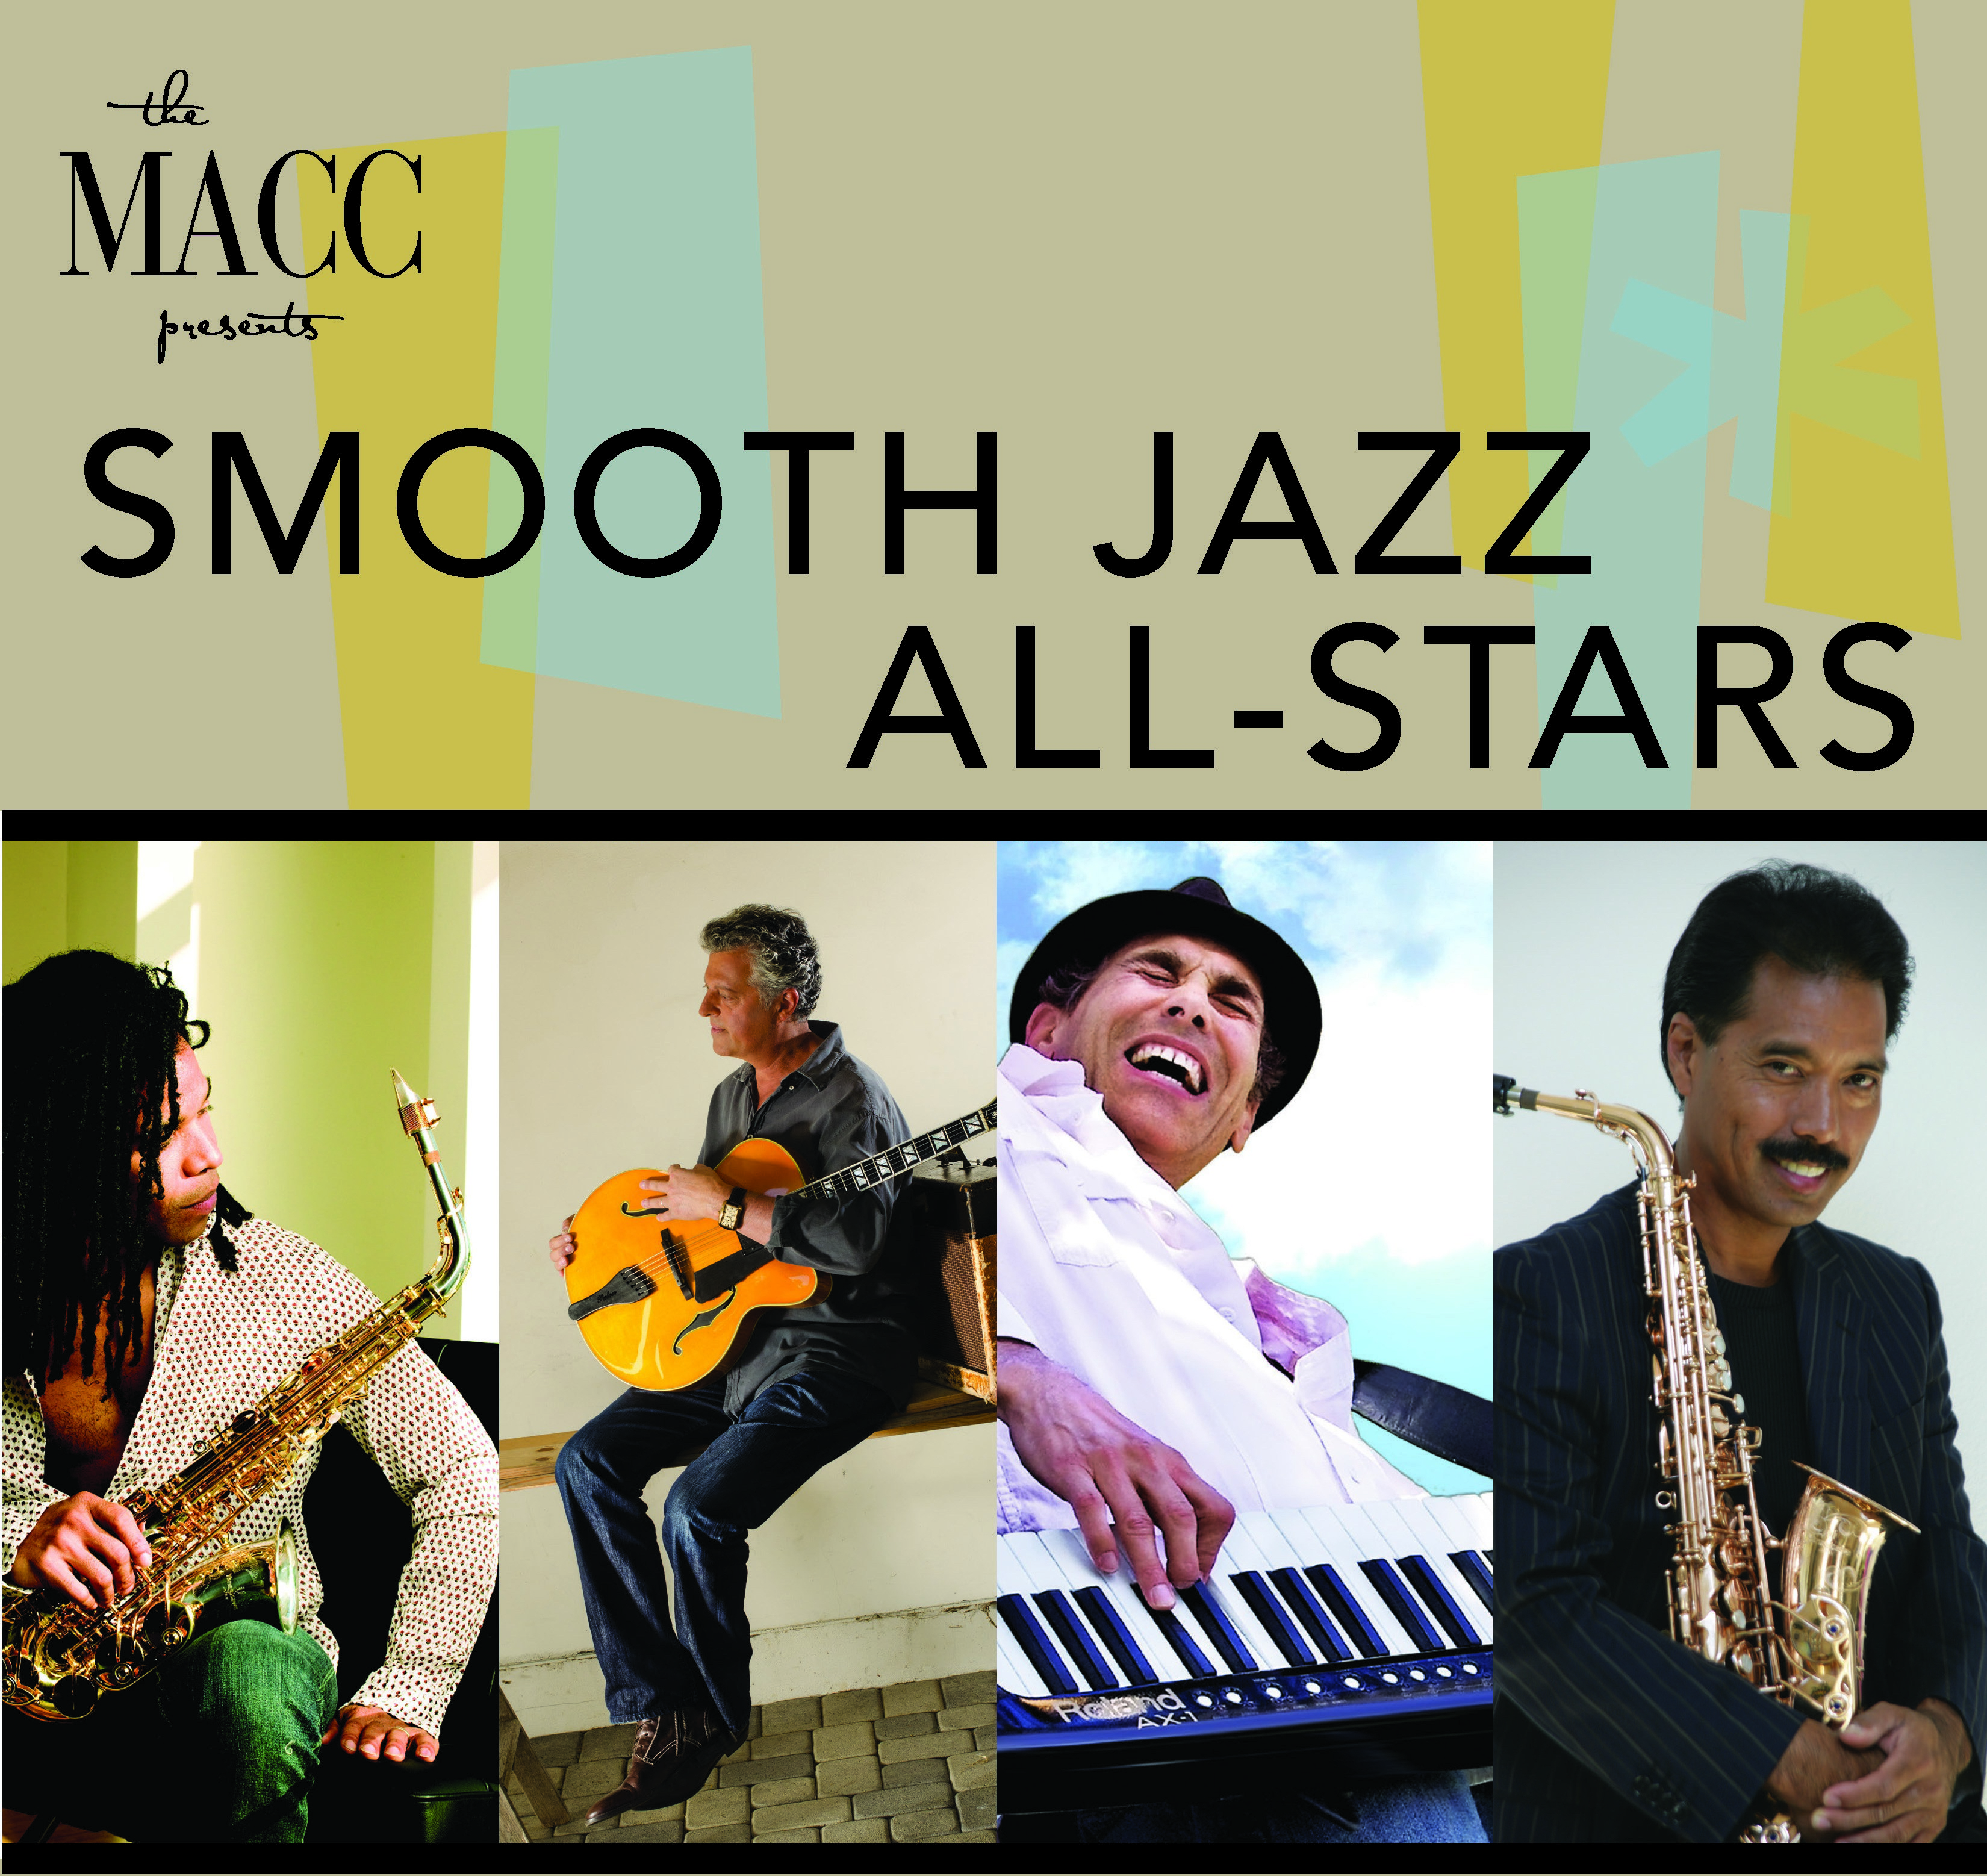 Smooth Jazz All-stars photo provided by The MACC.